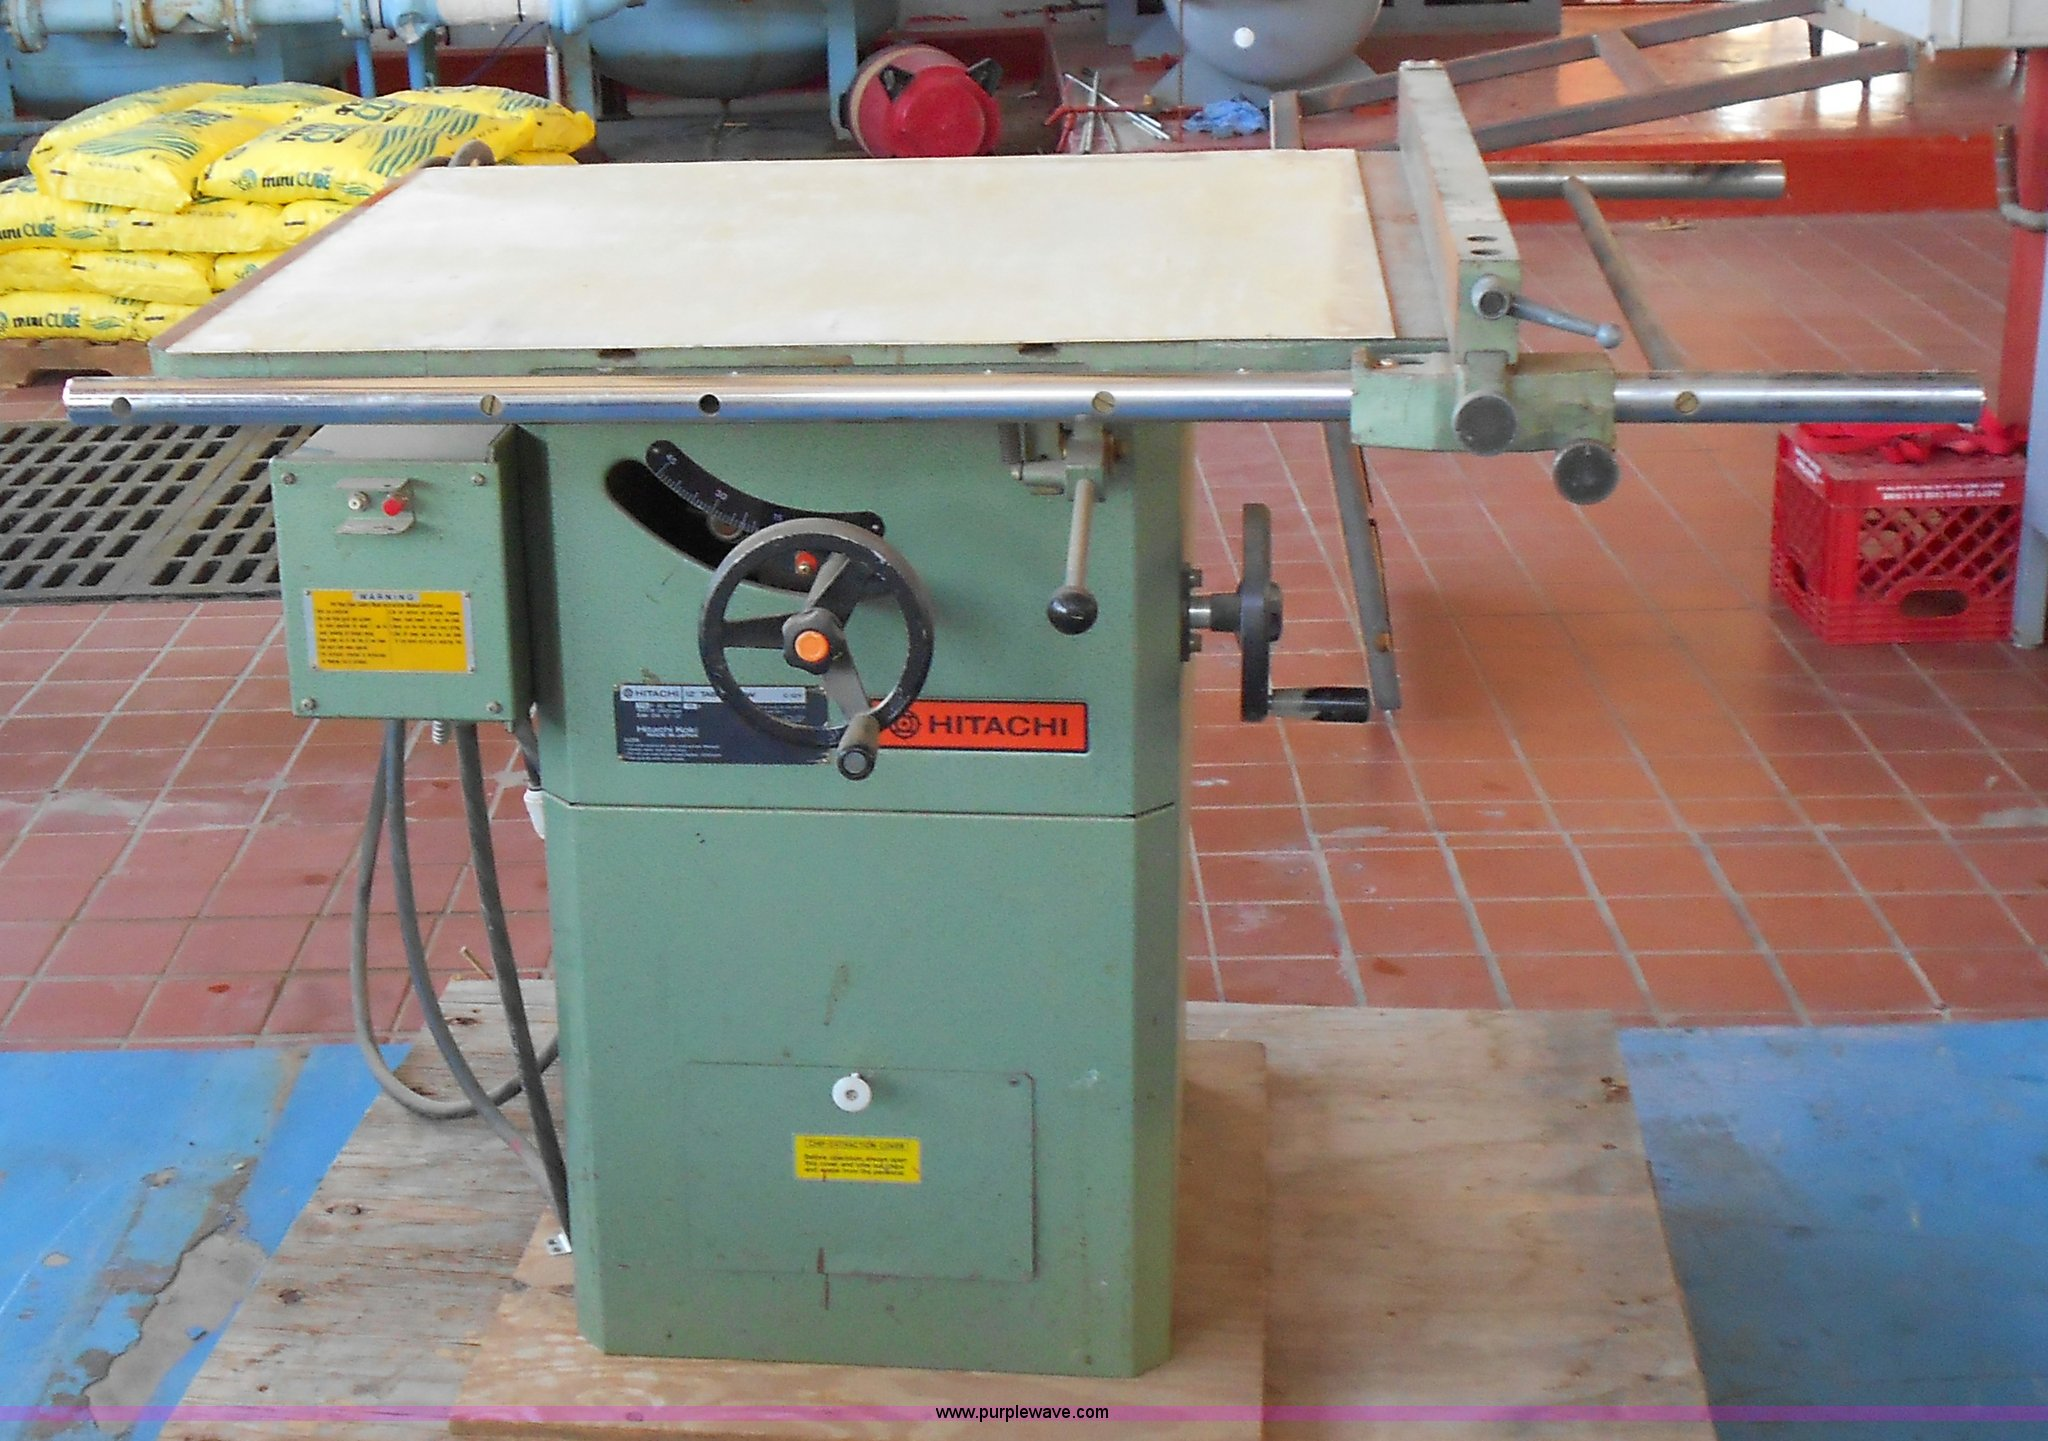 Hitachi table saw item d9082 sold november 8 government d9082 image for item d9082 hitachi table saw greentooth Image collections